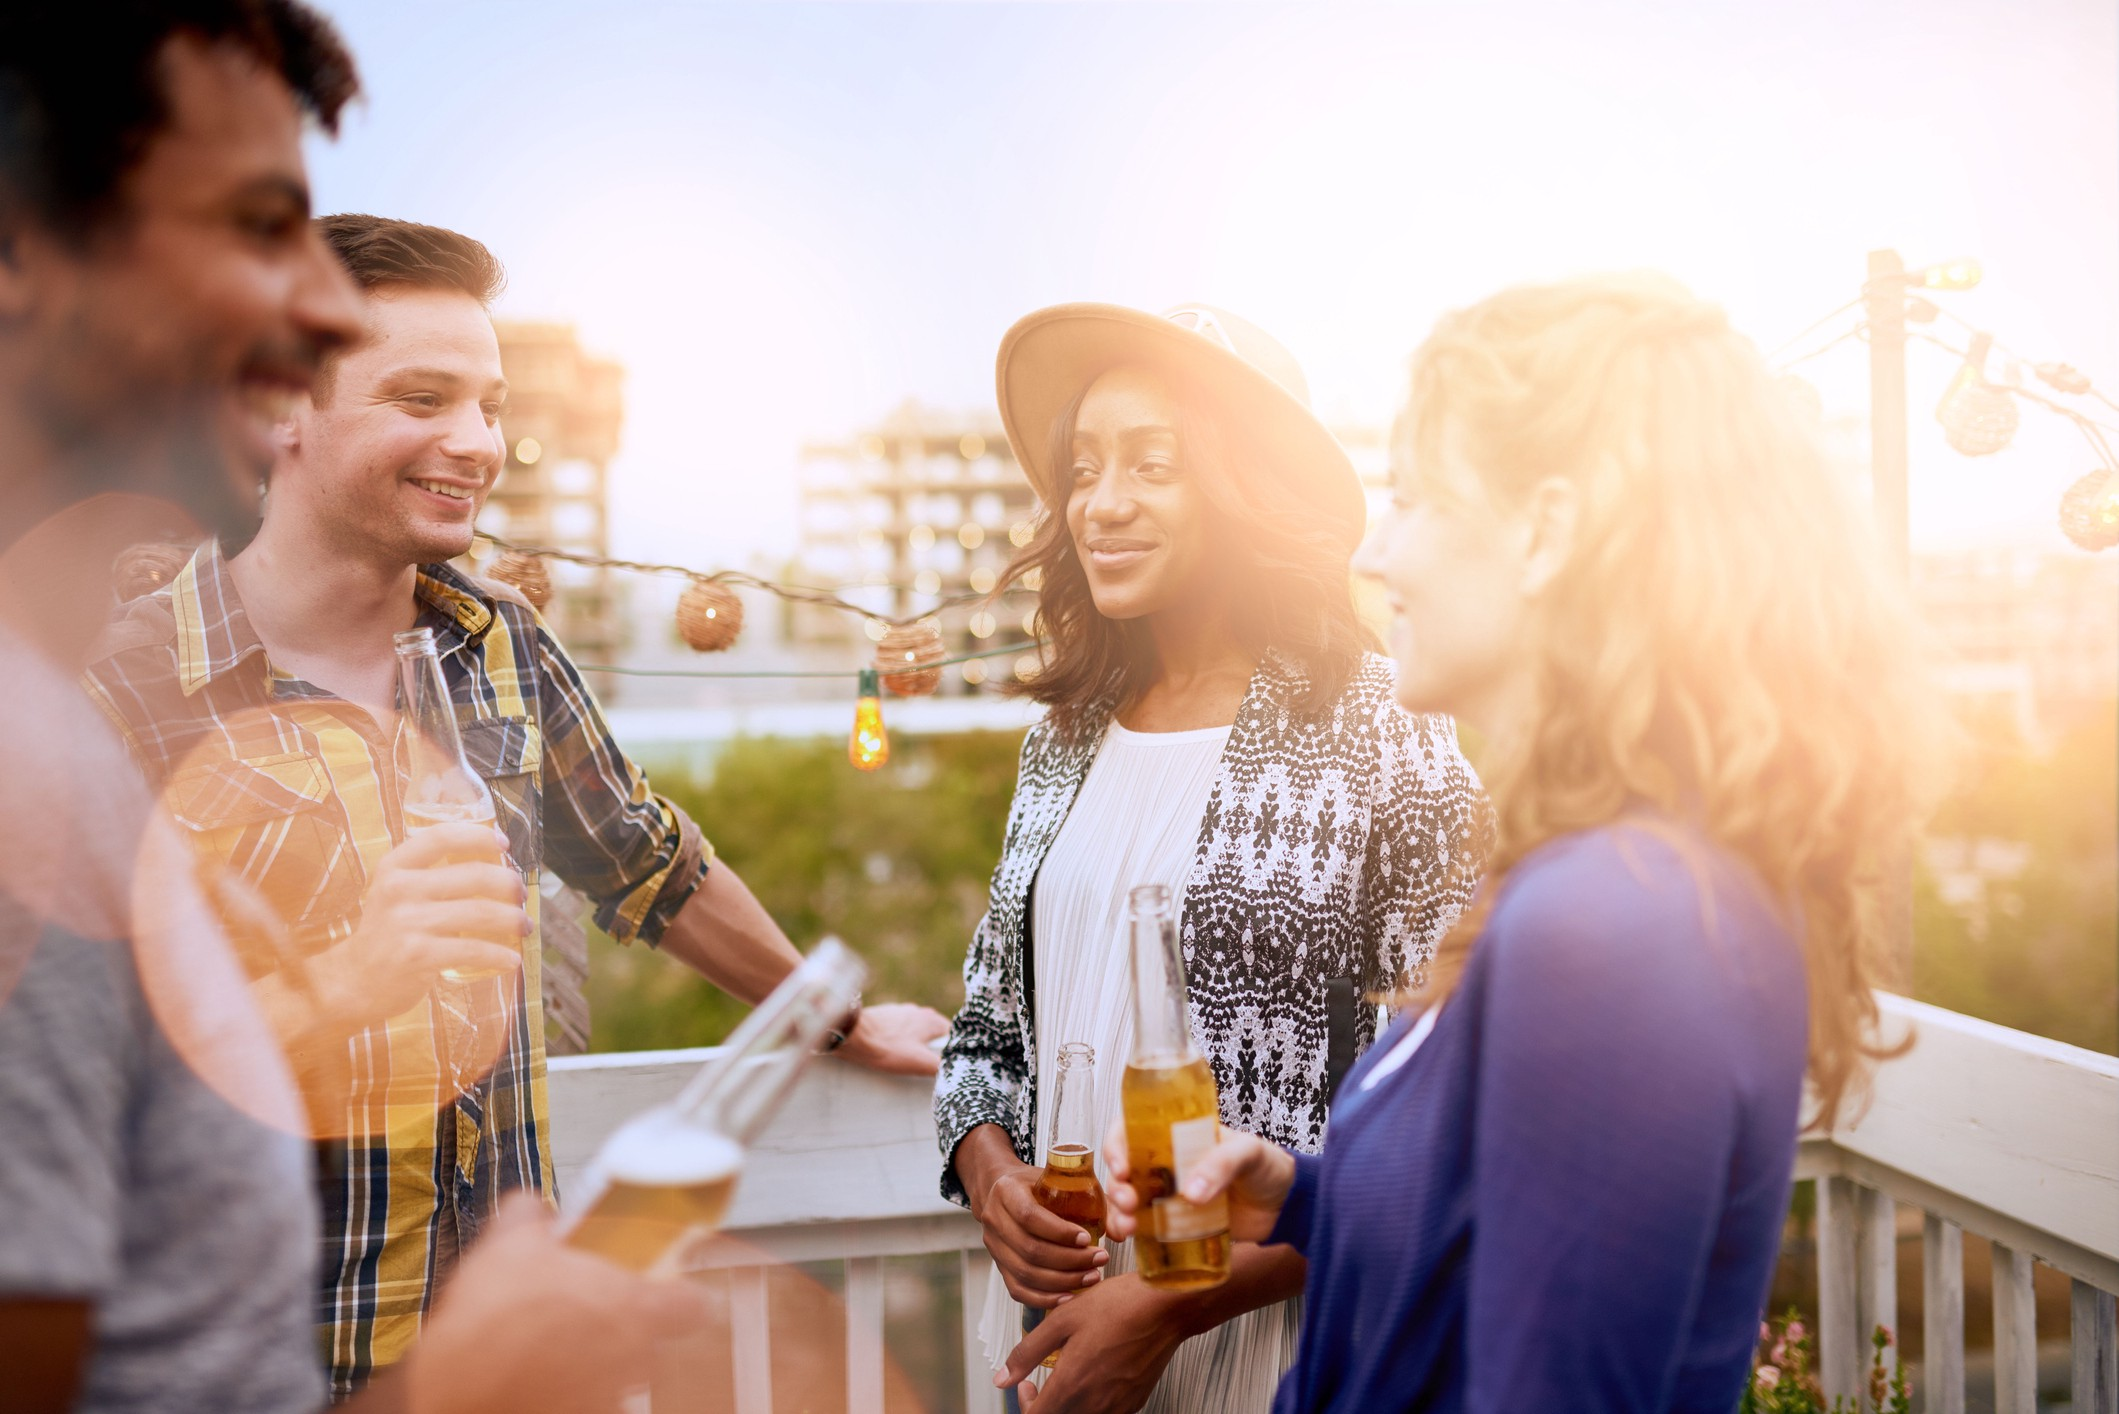 Four people standing with drinks on a deck.